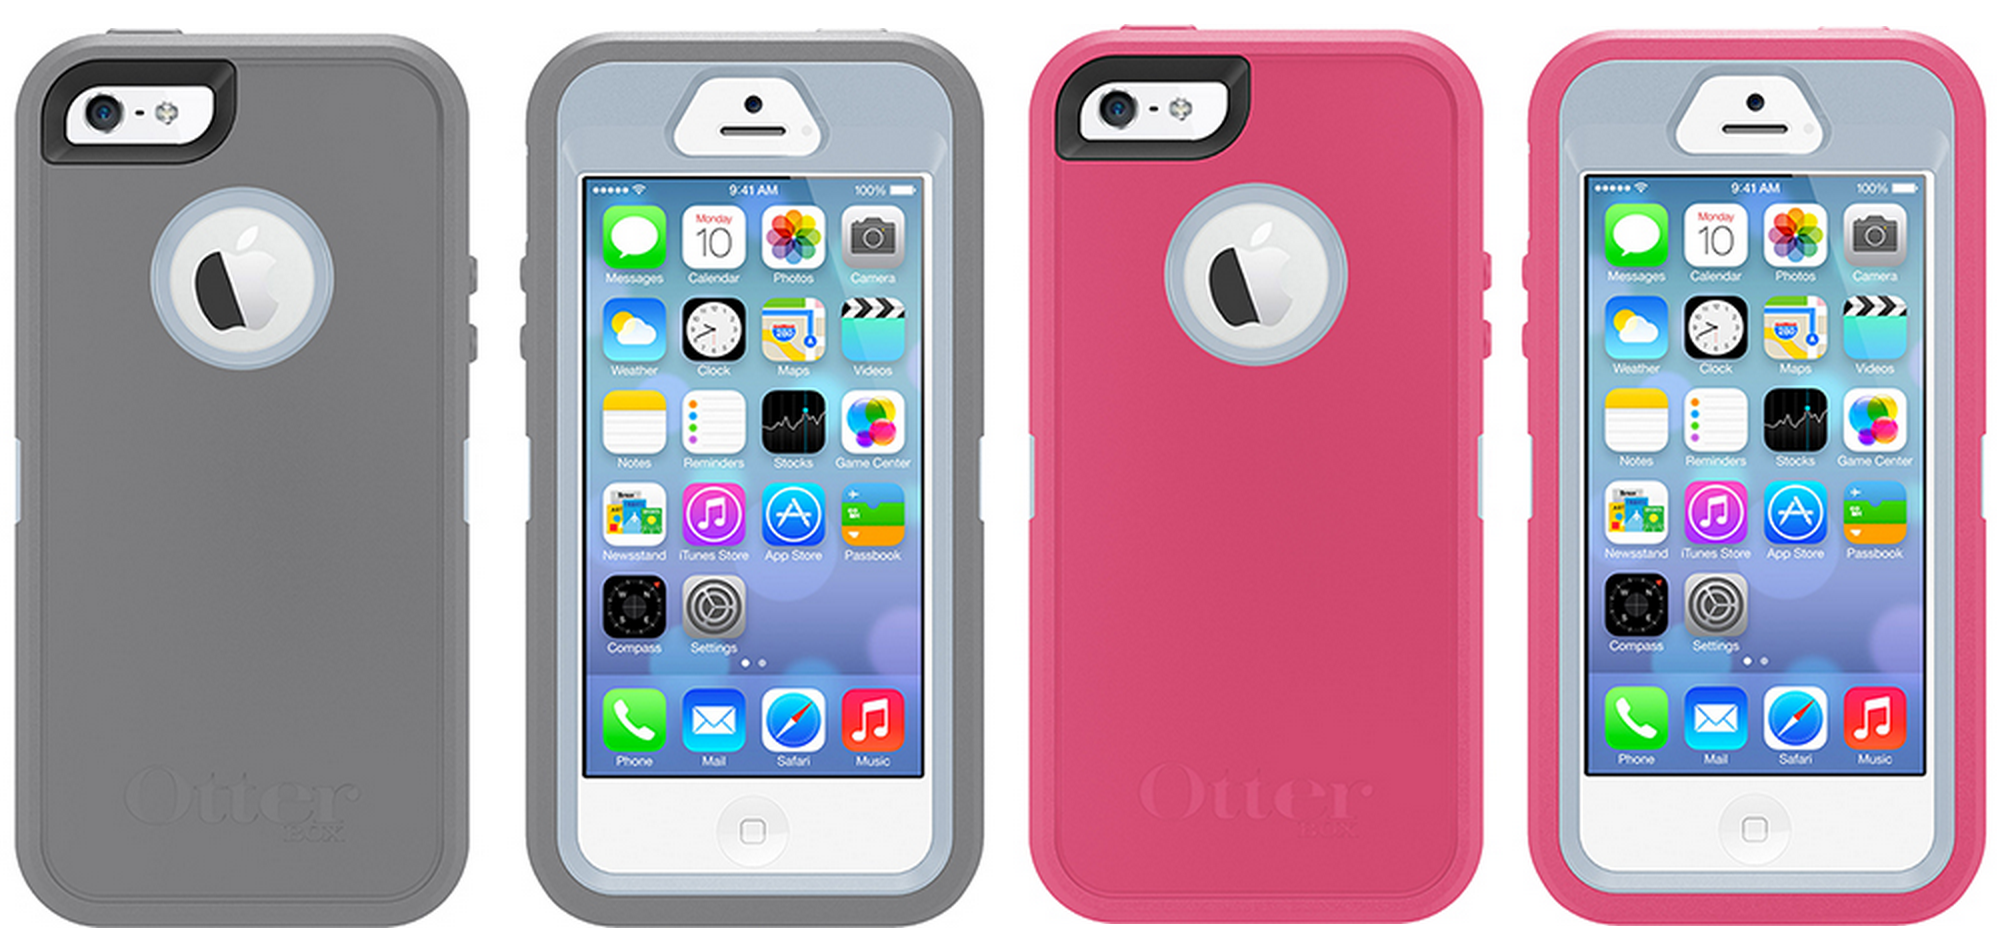 Otterbox-iPhone-5s-case